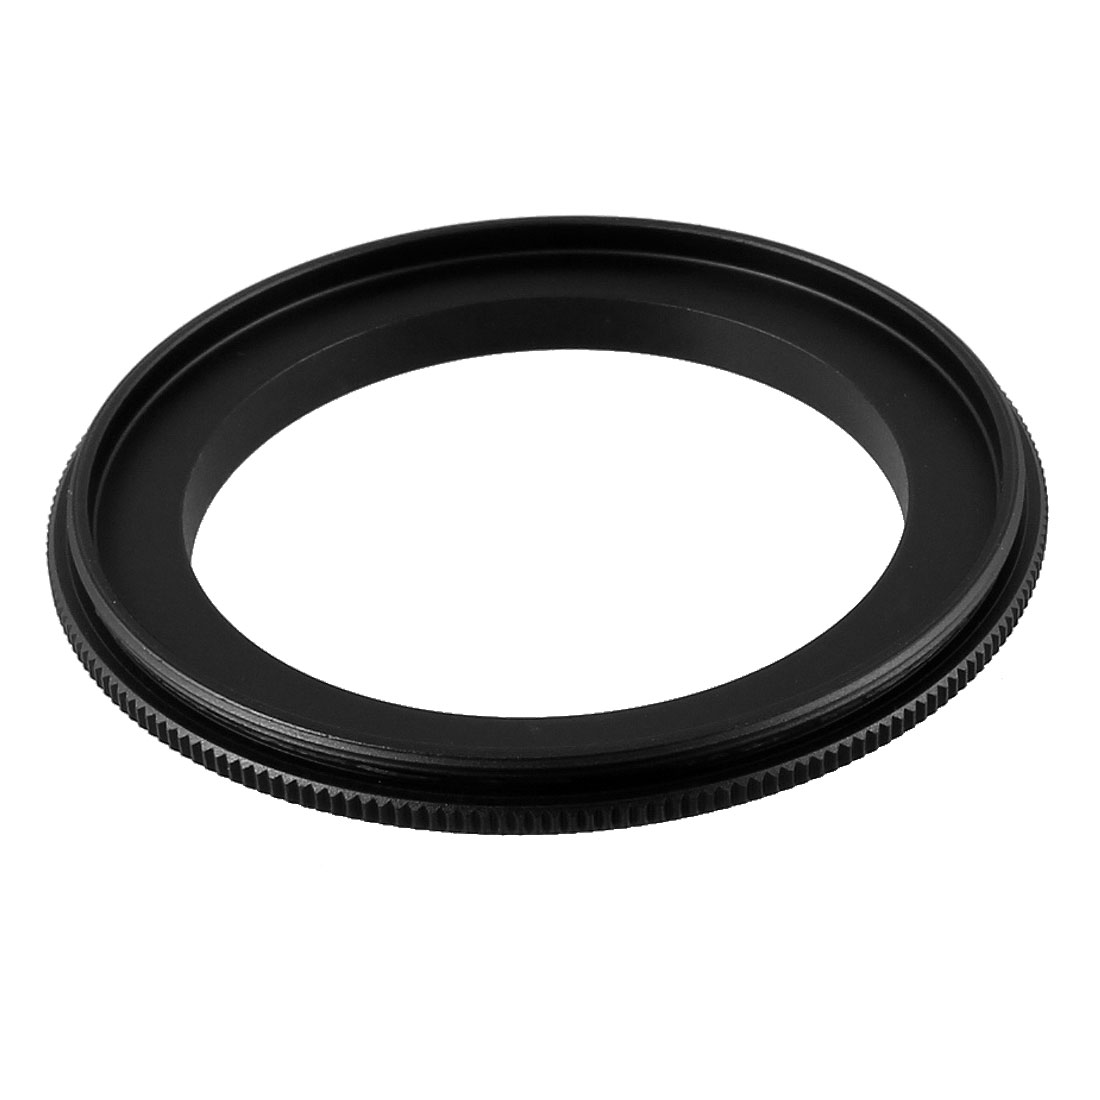 49mm-62mm 49mm to 62mm Male to Male Step up Ring Adapter Black for Camera